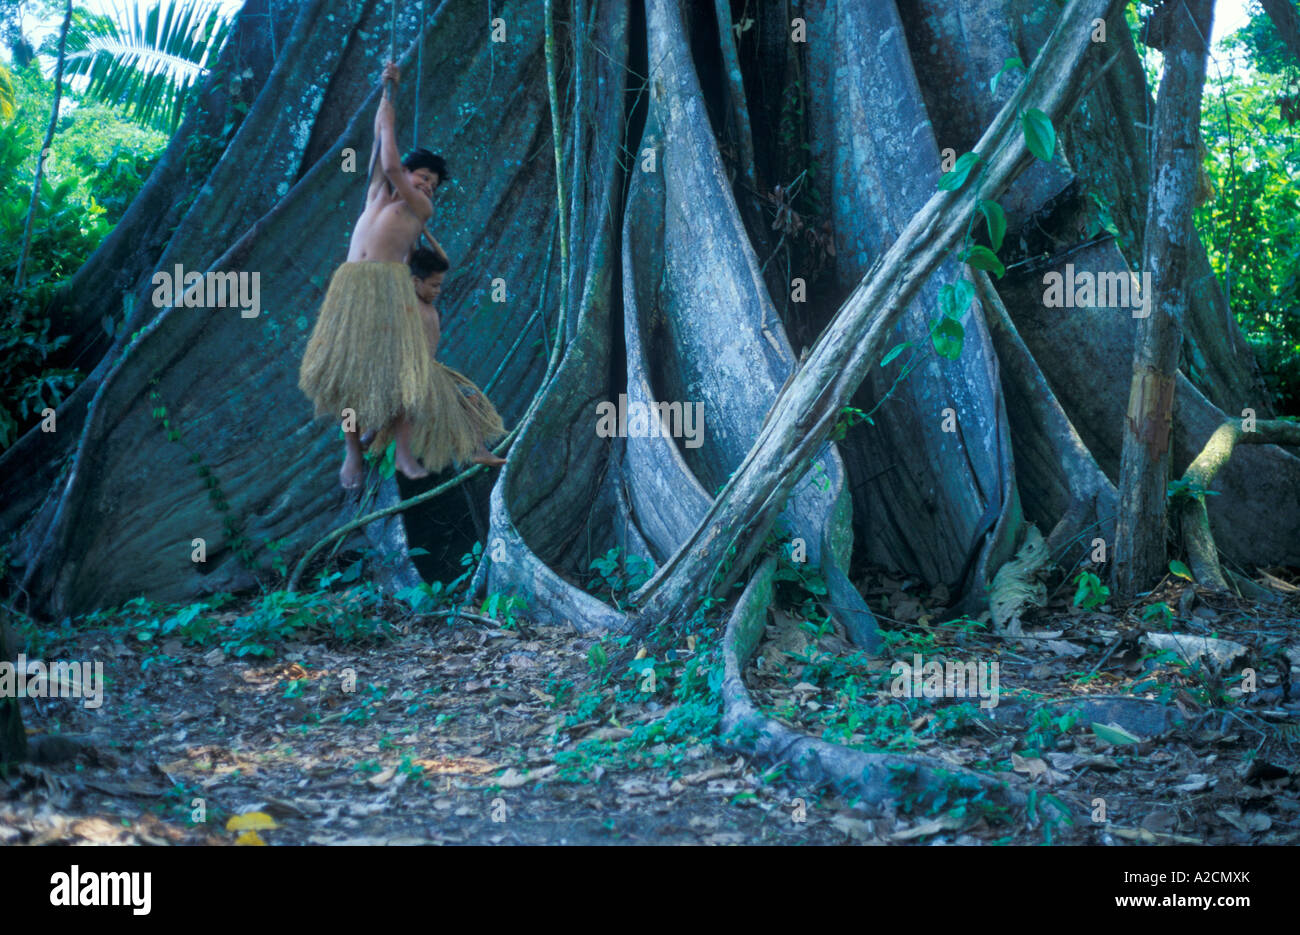 boys from a Yagua Tribe living near Iquitos using the lianas of a giant tribe as swings - Stock Image